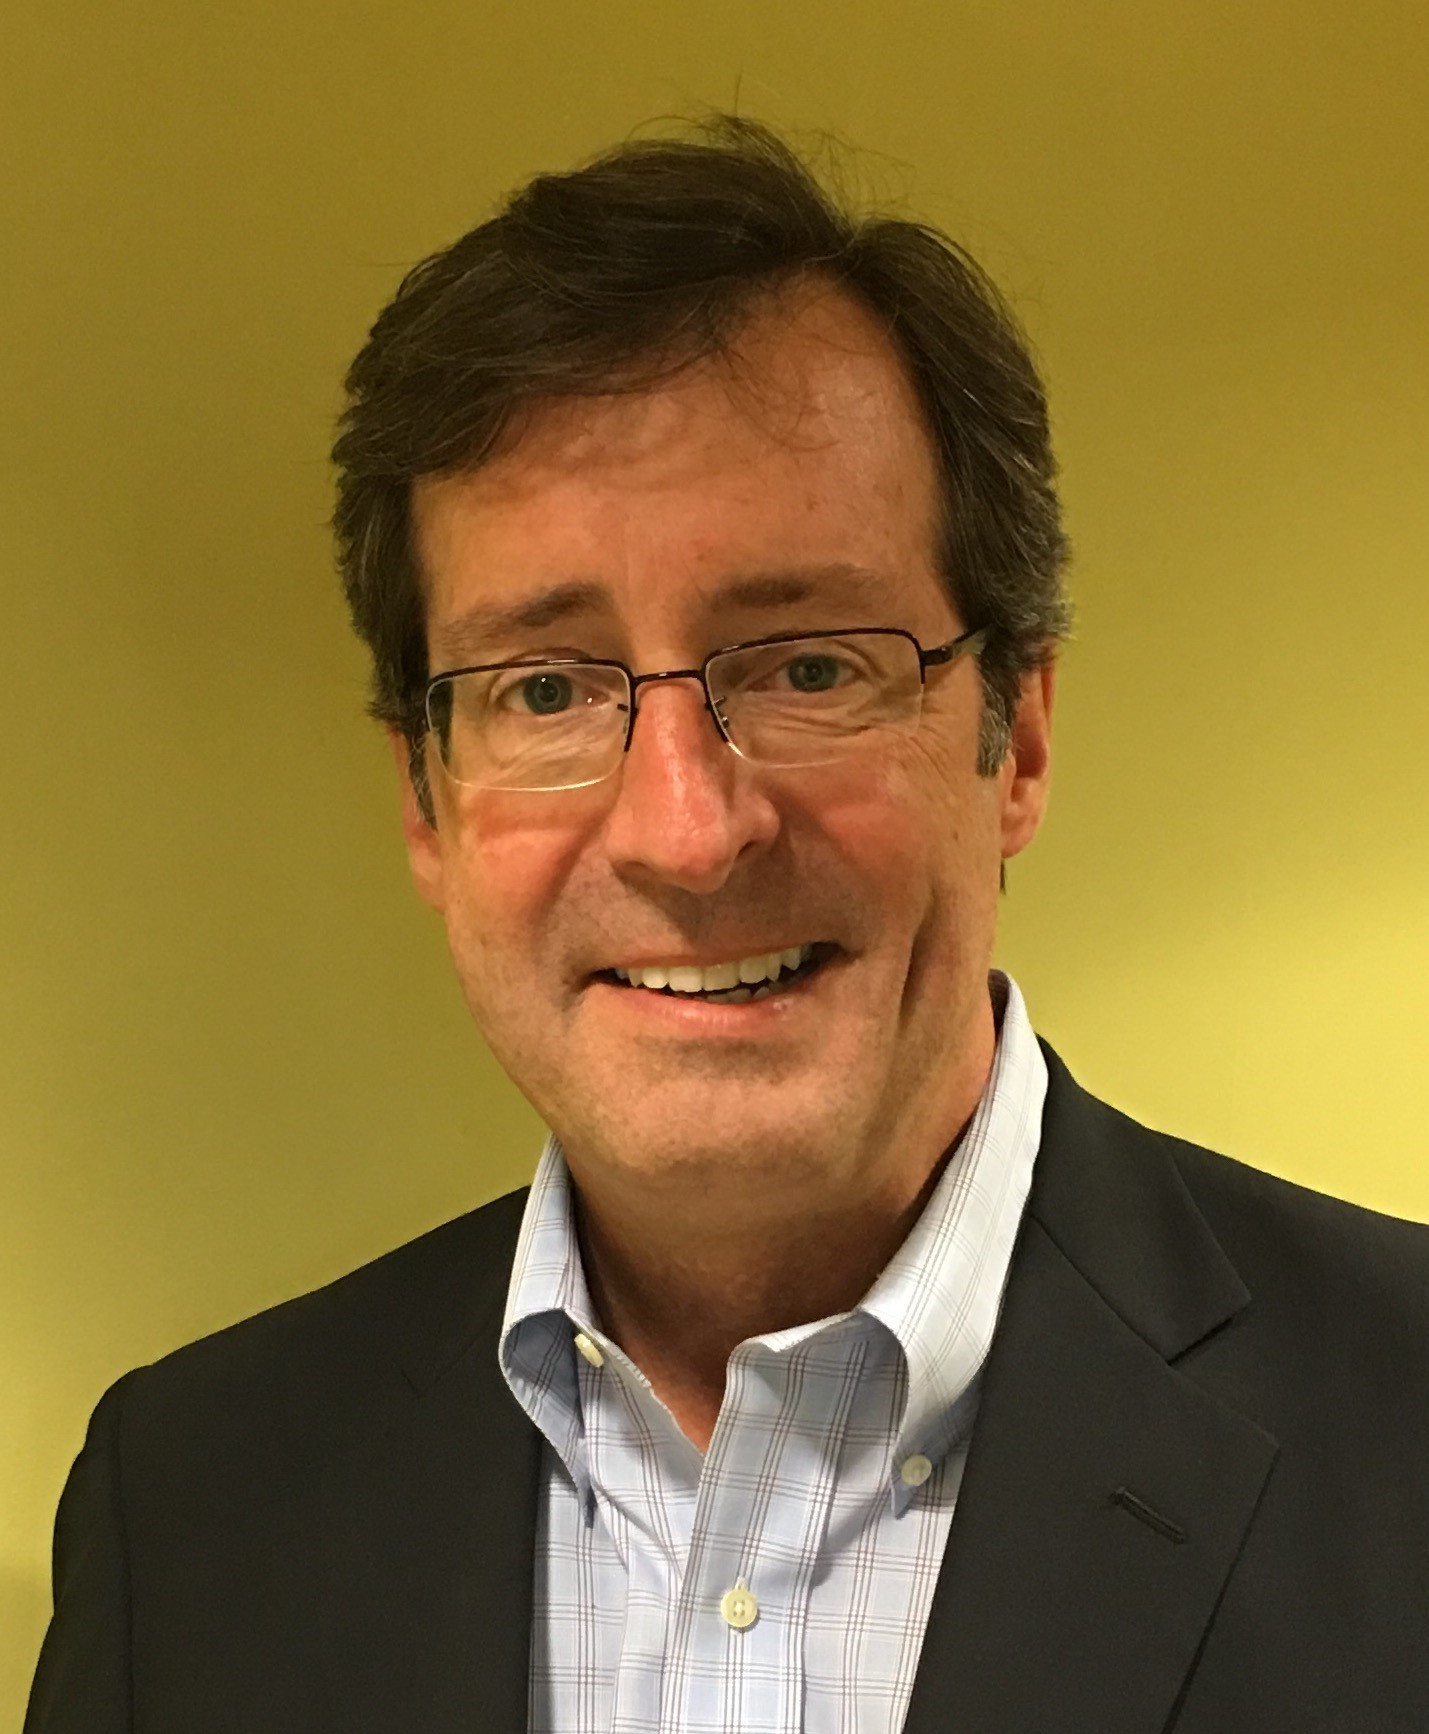 Val Carolin, General Manager of the Greenville, S.C. market for Salem Media Group (Photo: Business Wire)